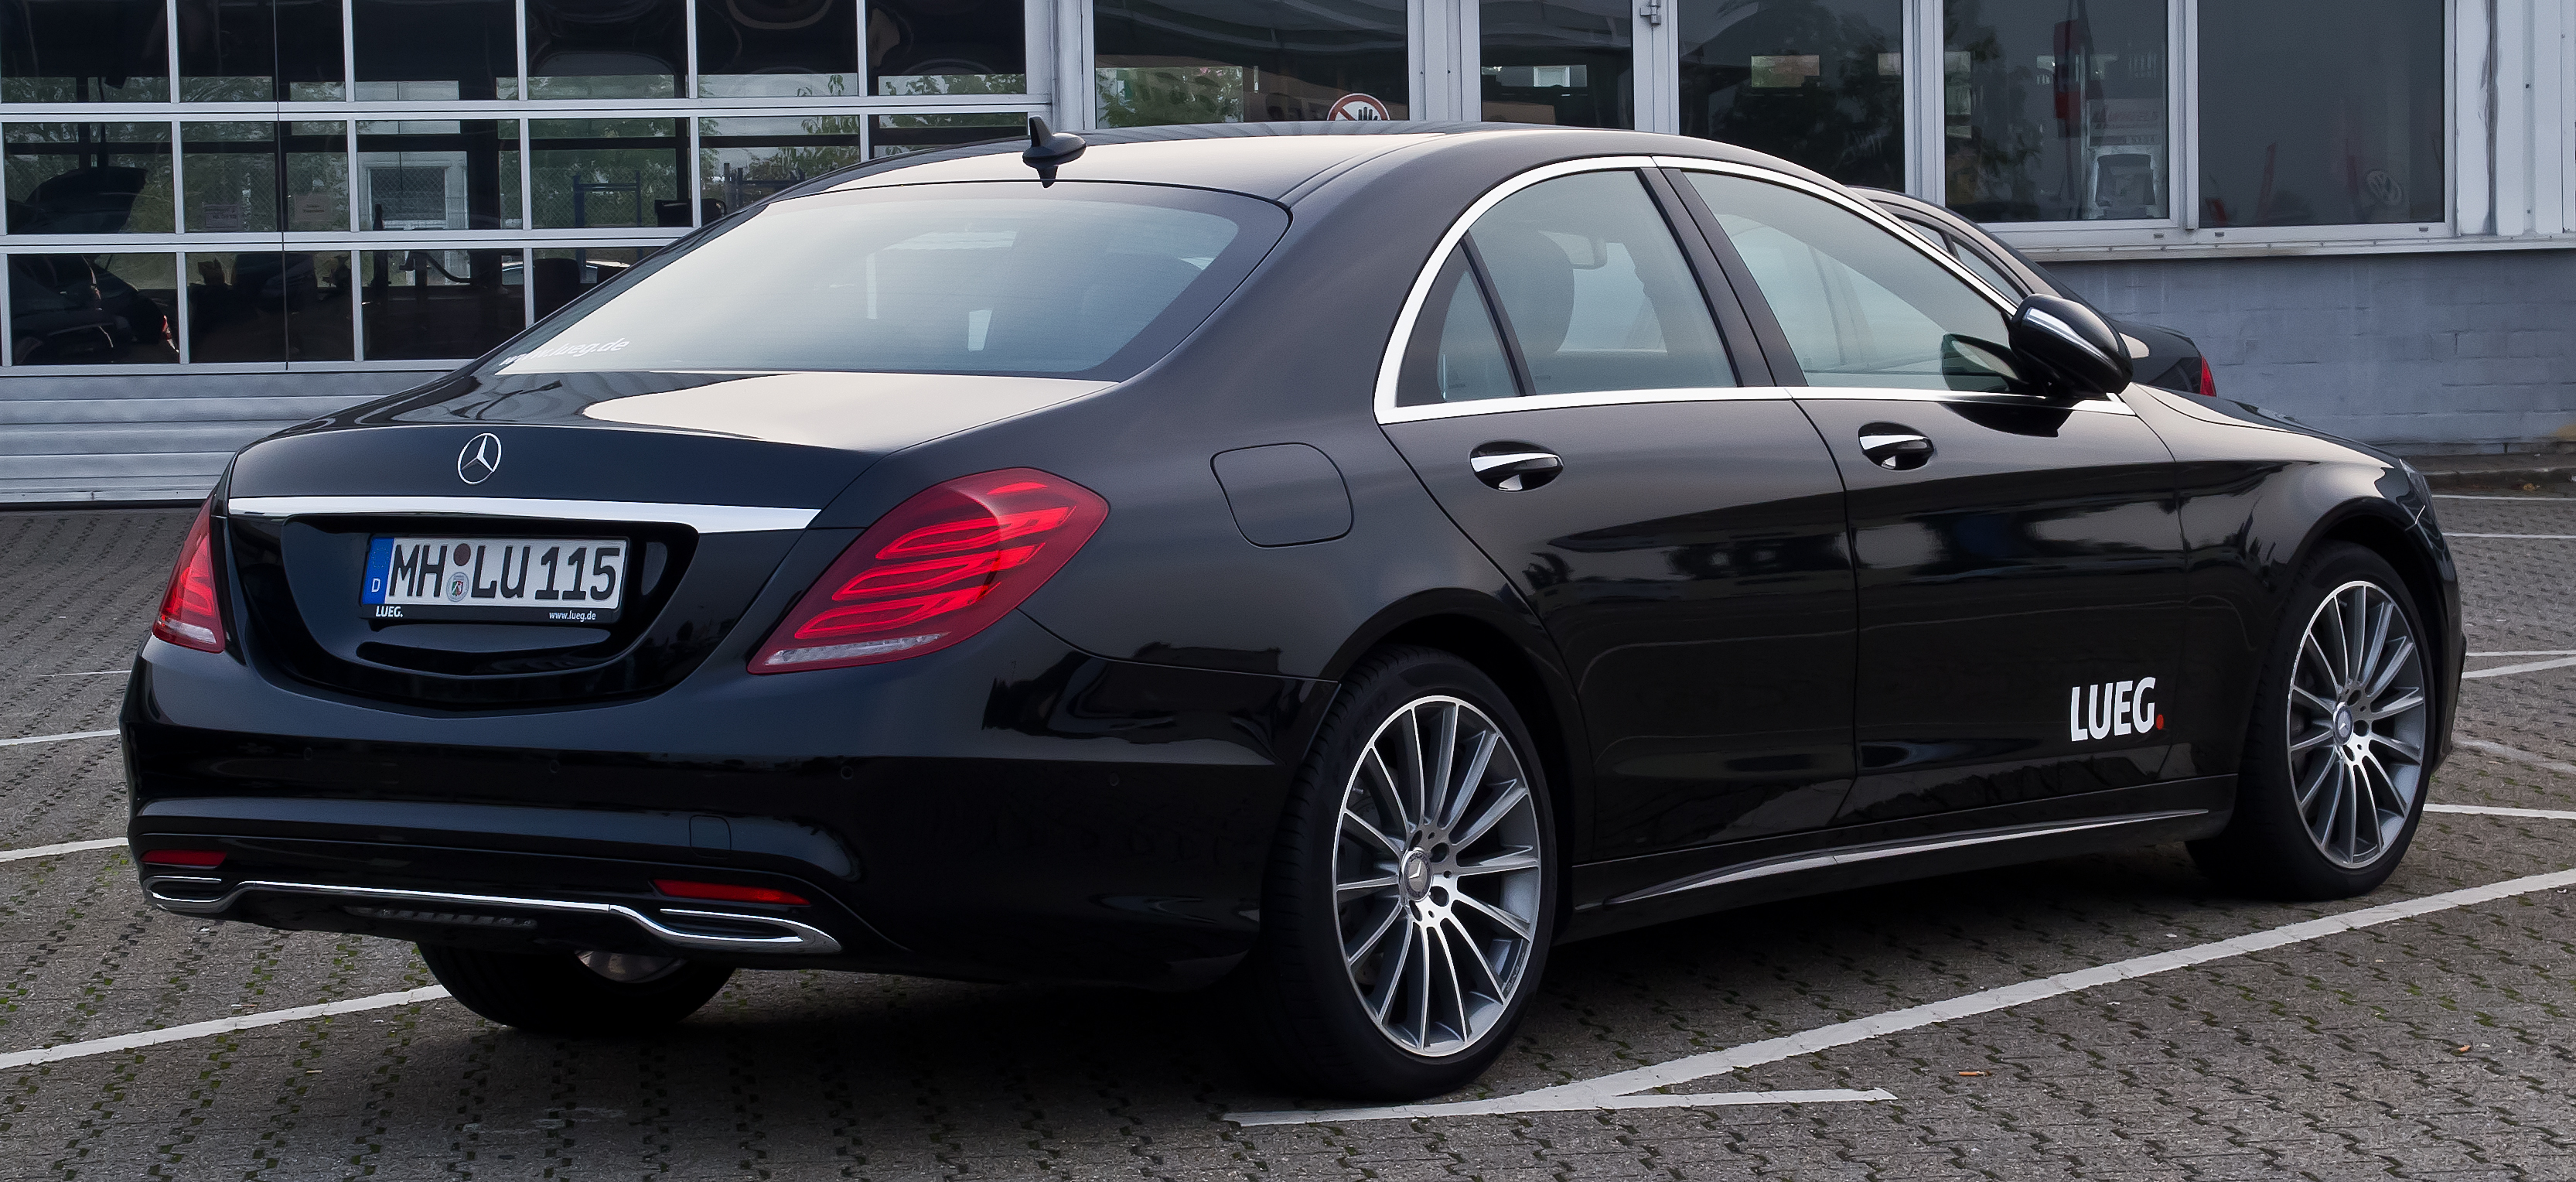 mercedes benz s350 amg 2013. Black Bedroom Furniture Sets. Home Design Ideas